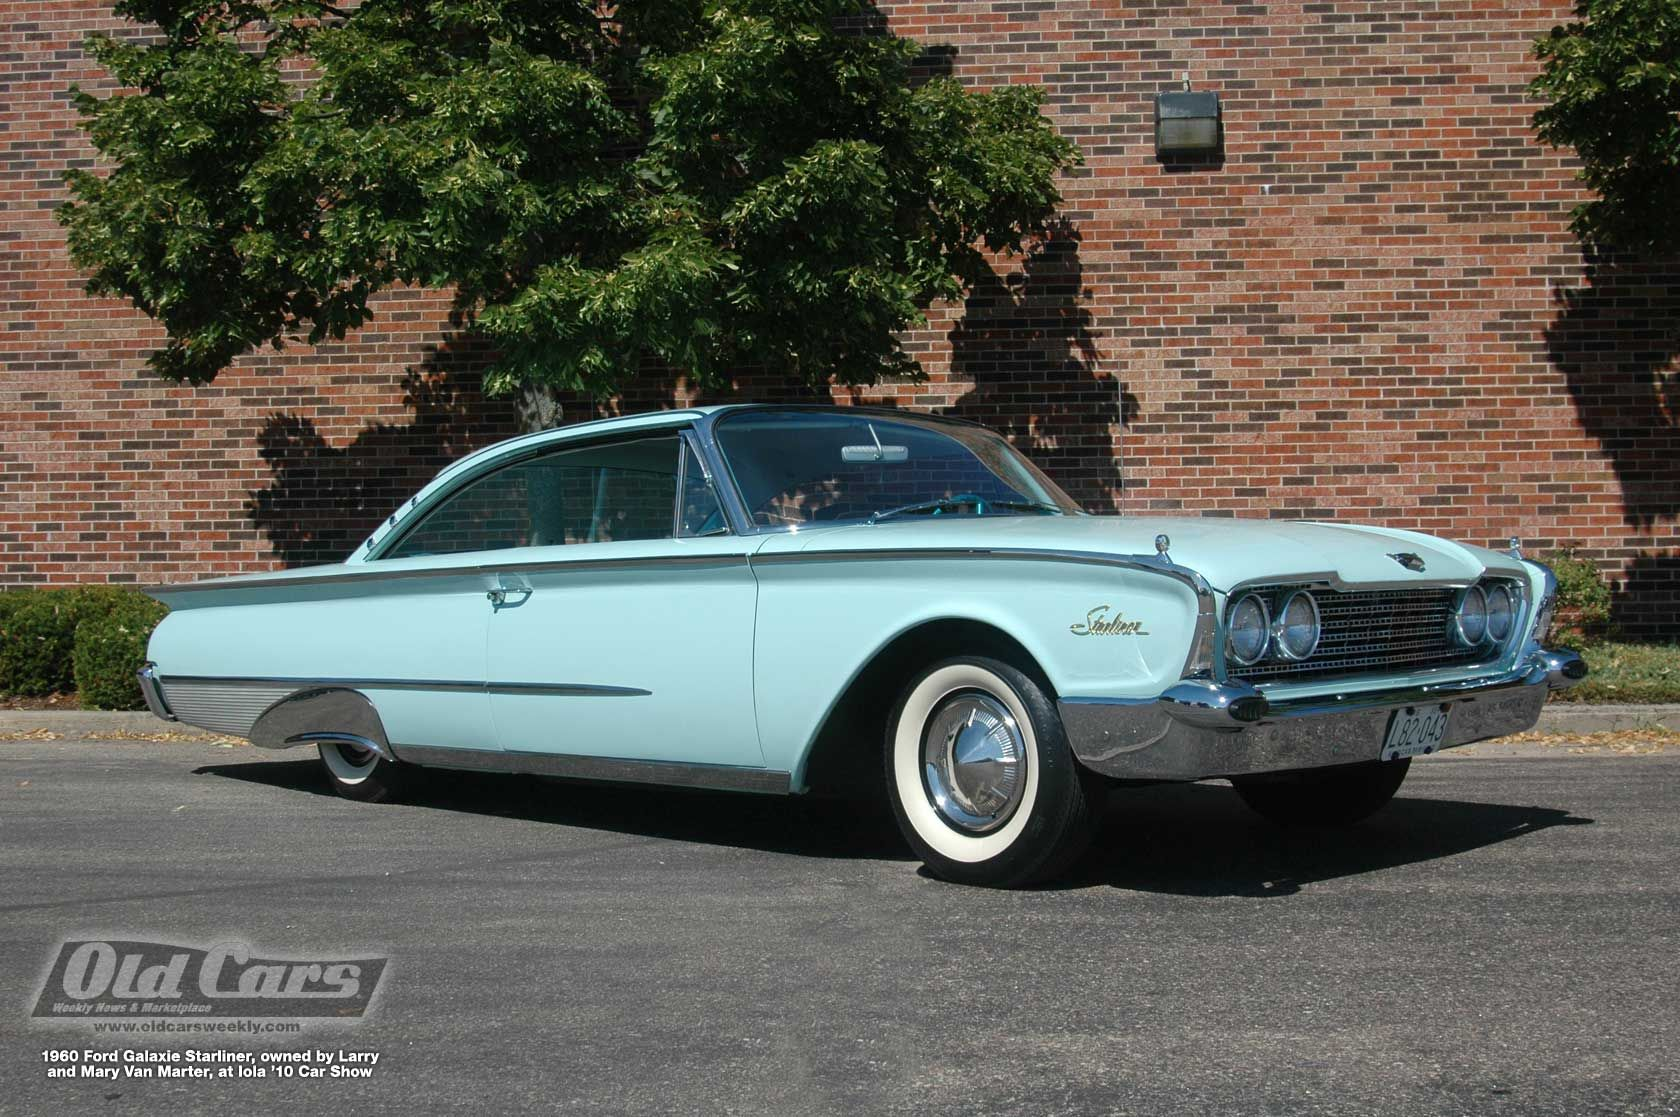 1960 Ford Galaxie | Wheels | Pinterest | Ford galaxie, Ford and Cars